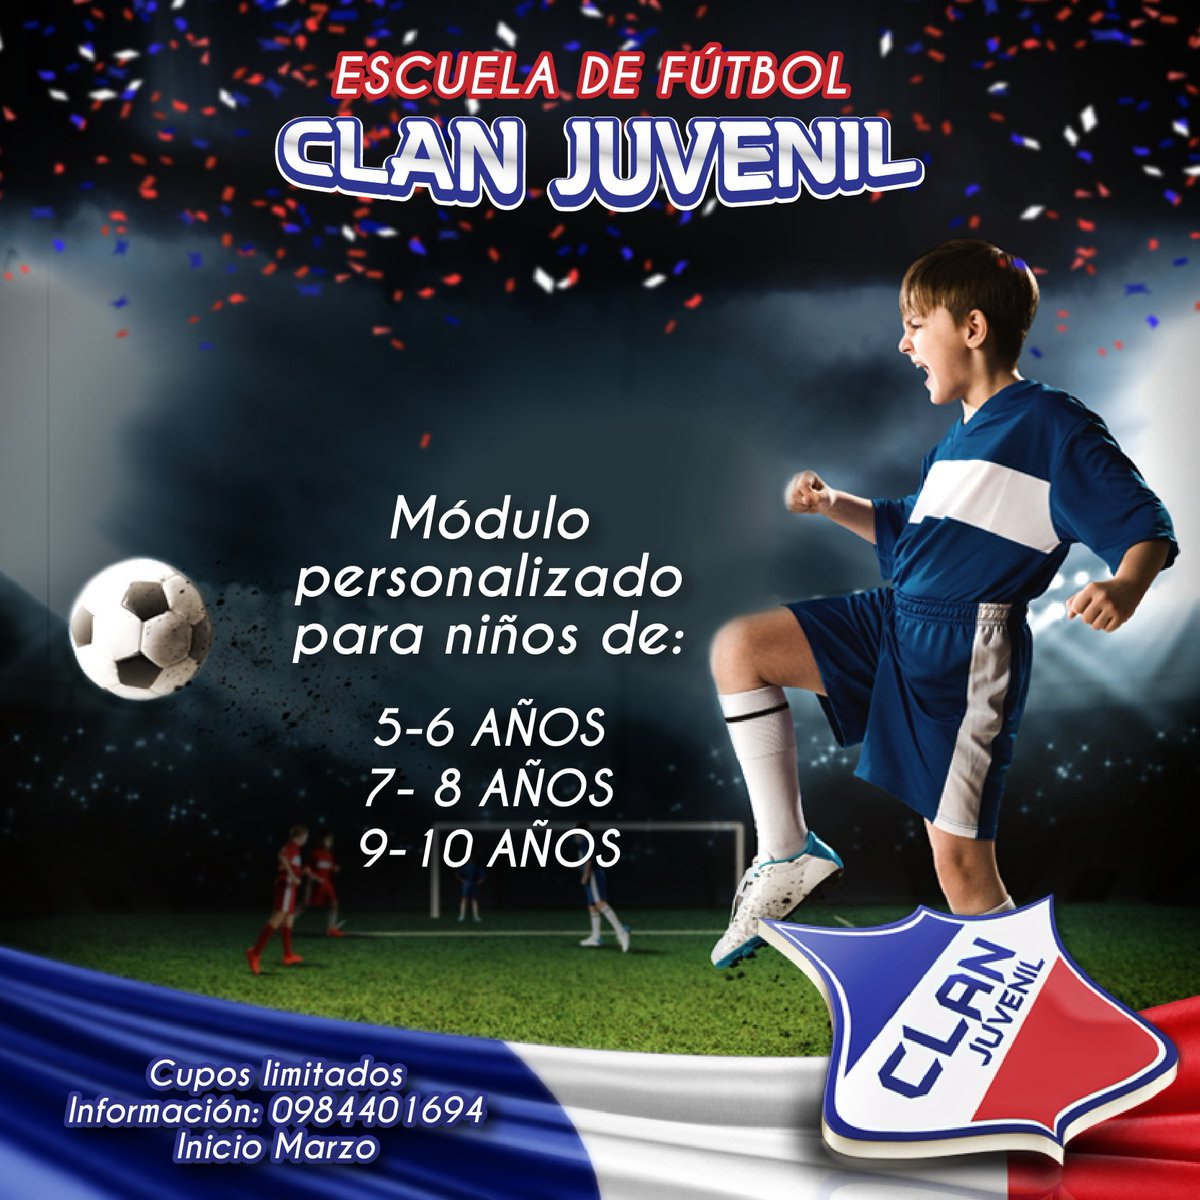 CLAN JUVENIL on Twitter